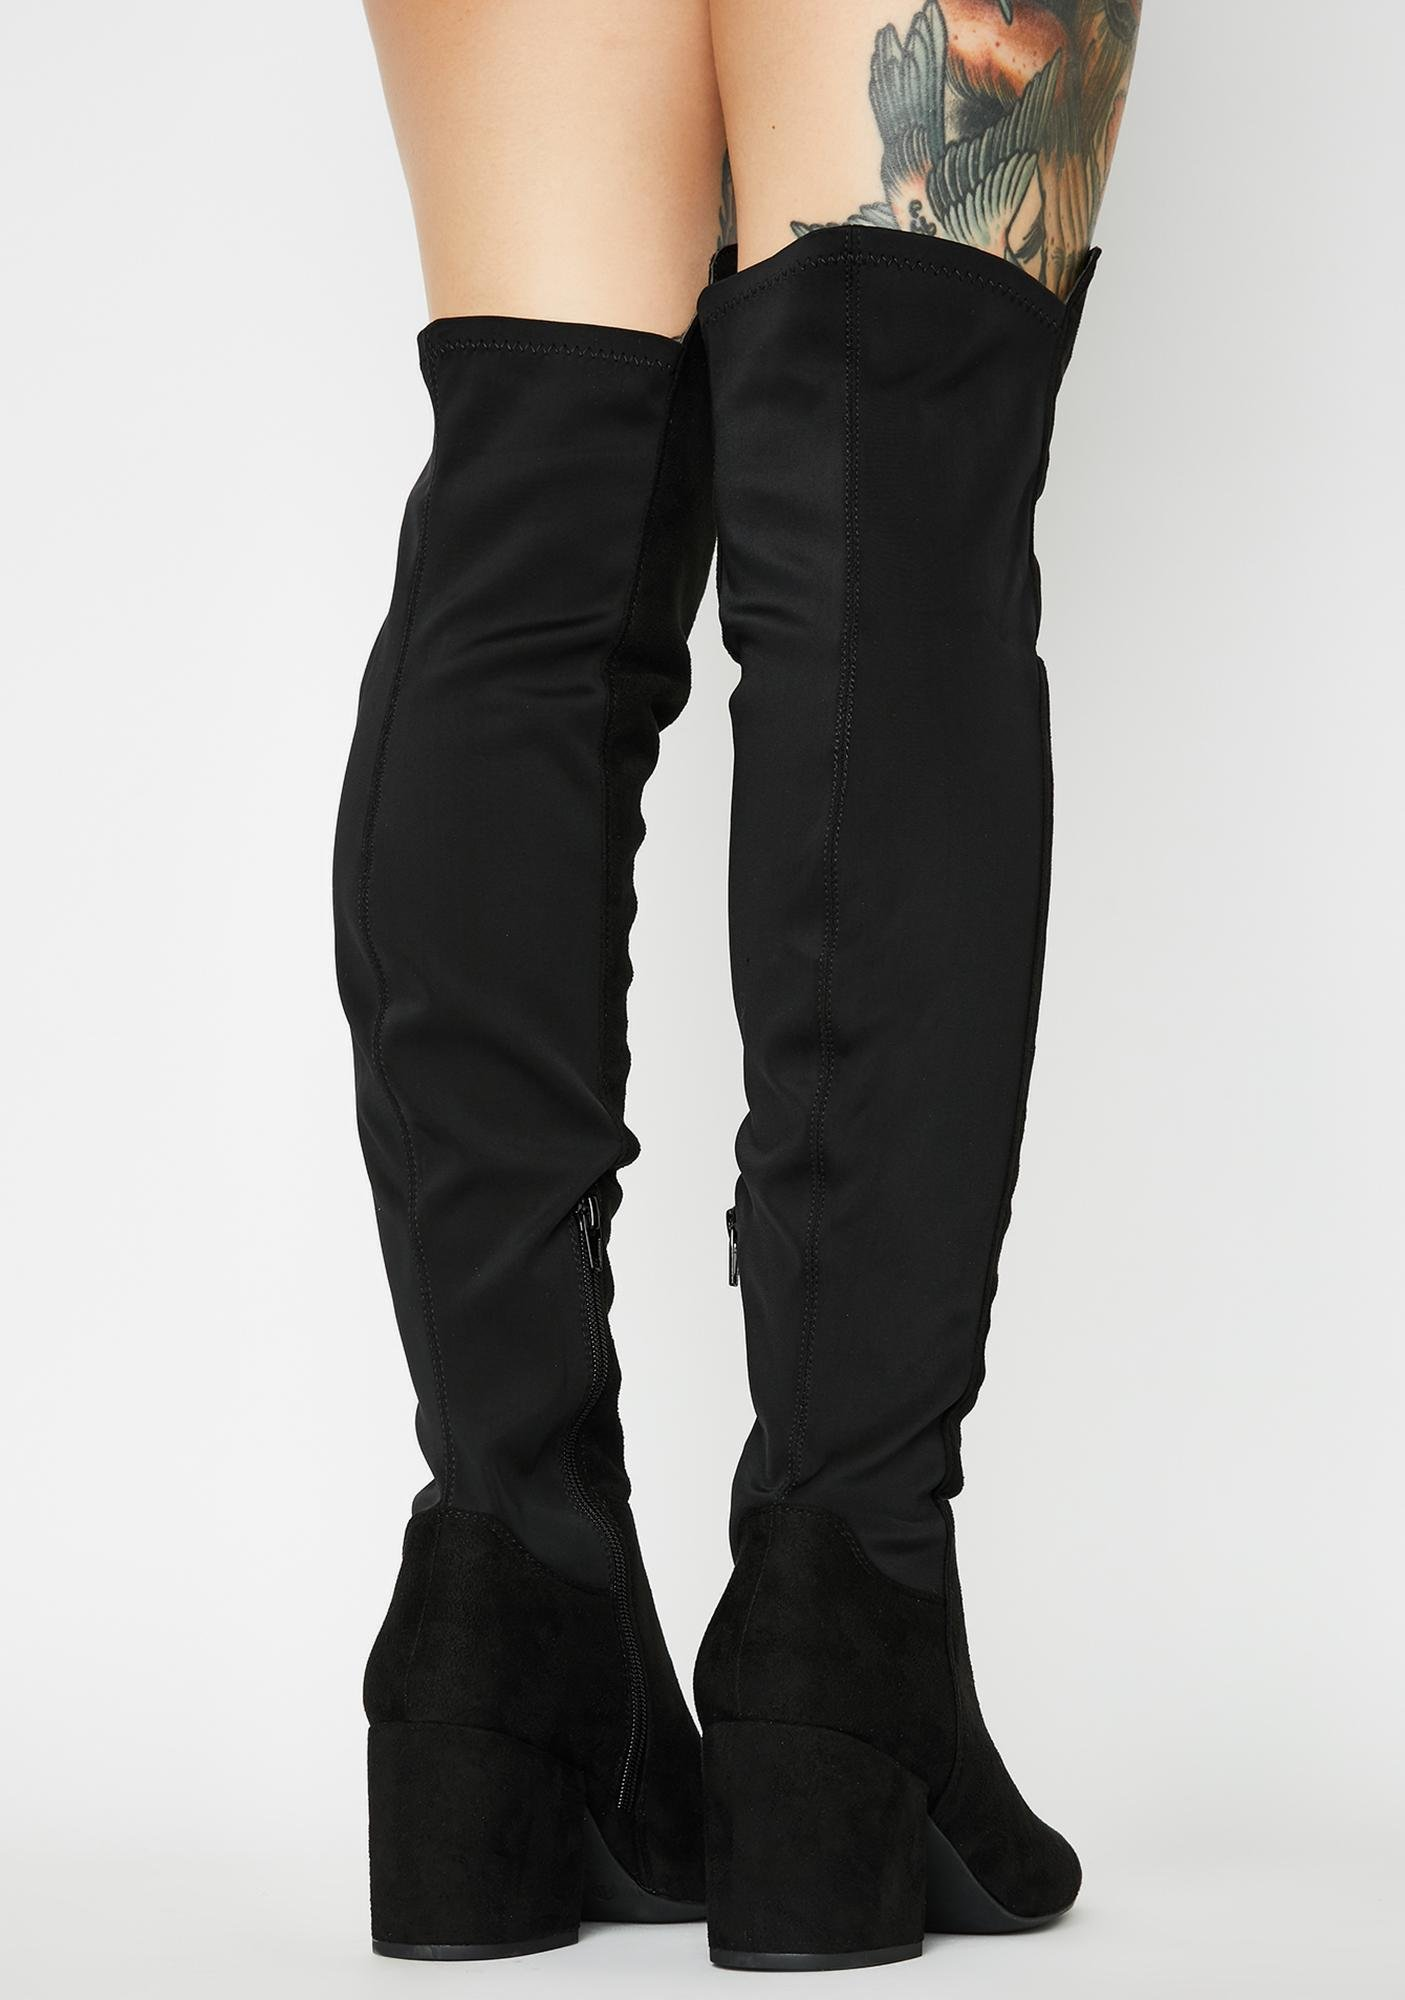 Expect Respect Knee High Boots